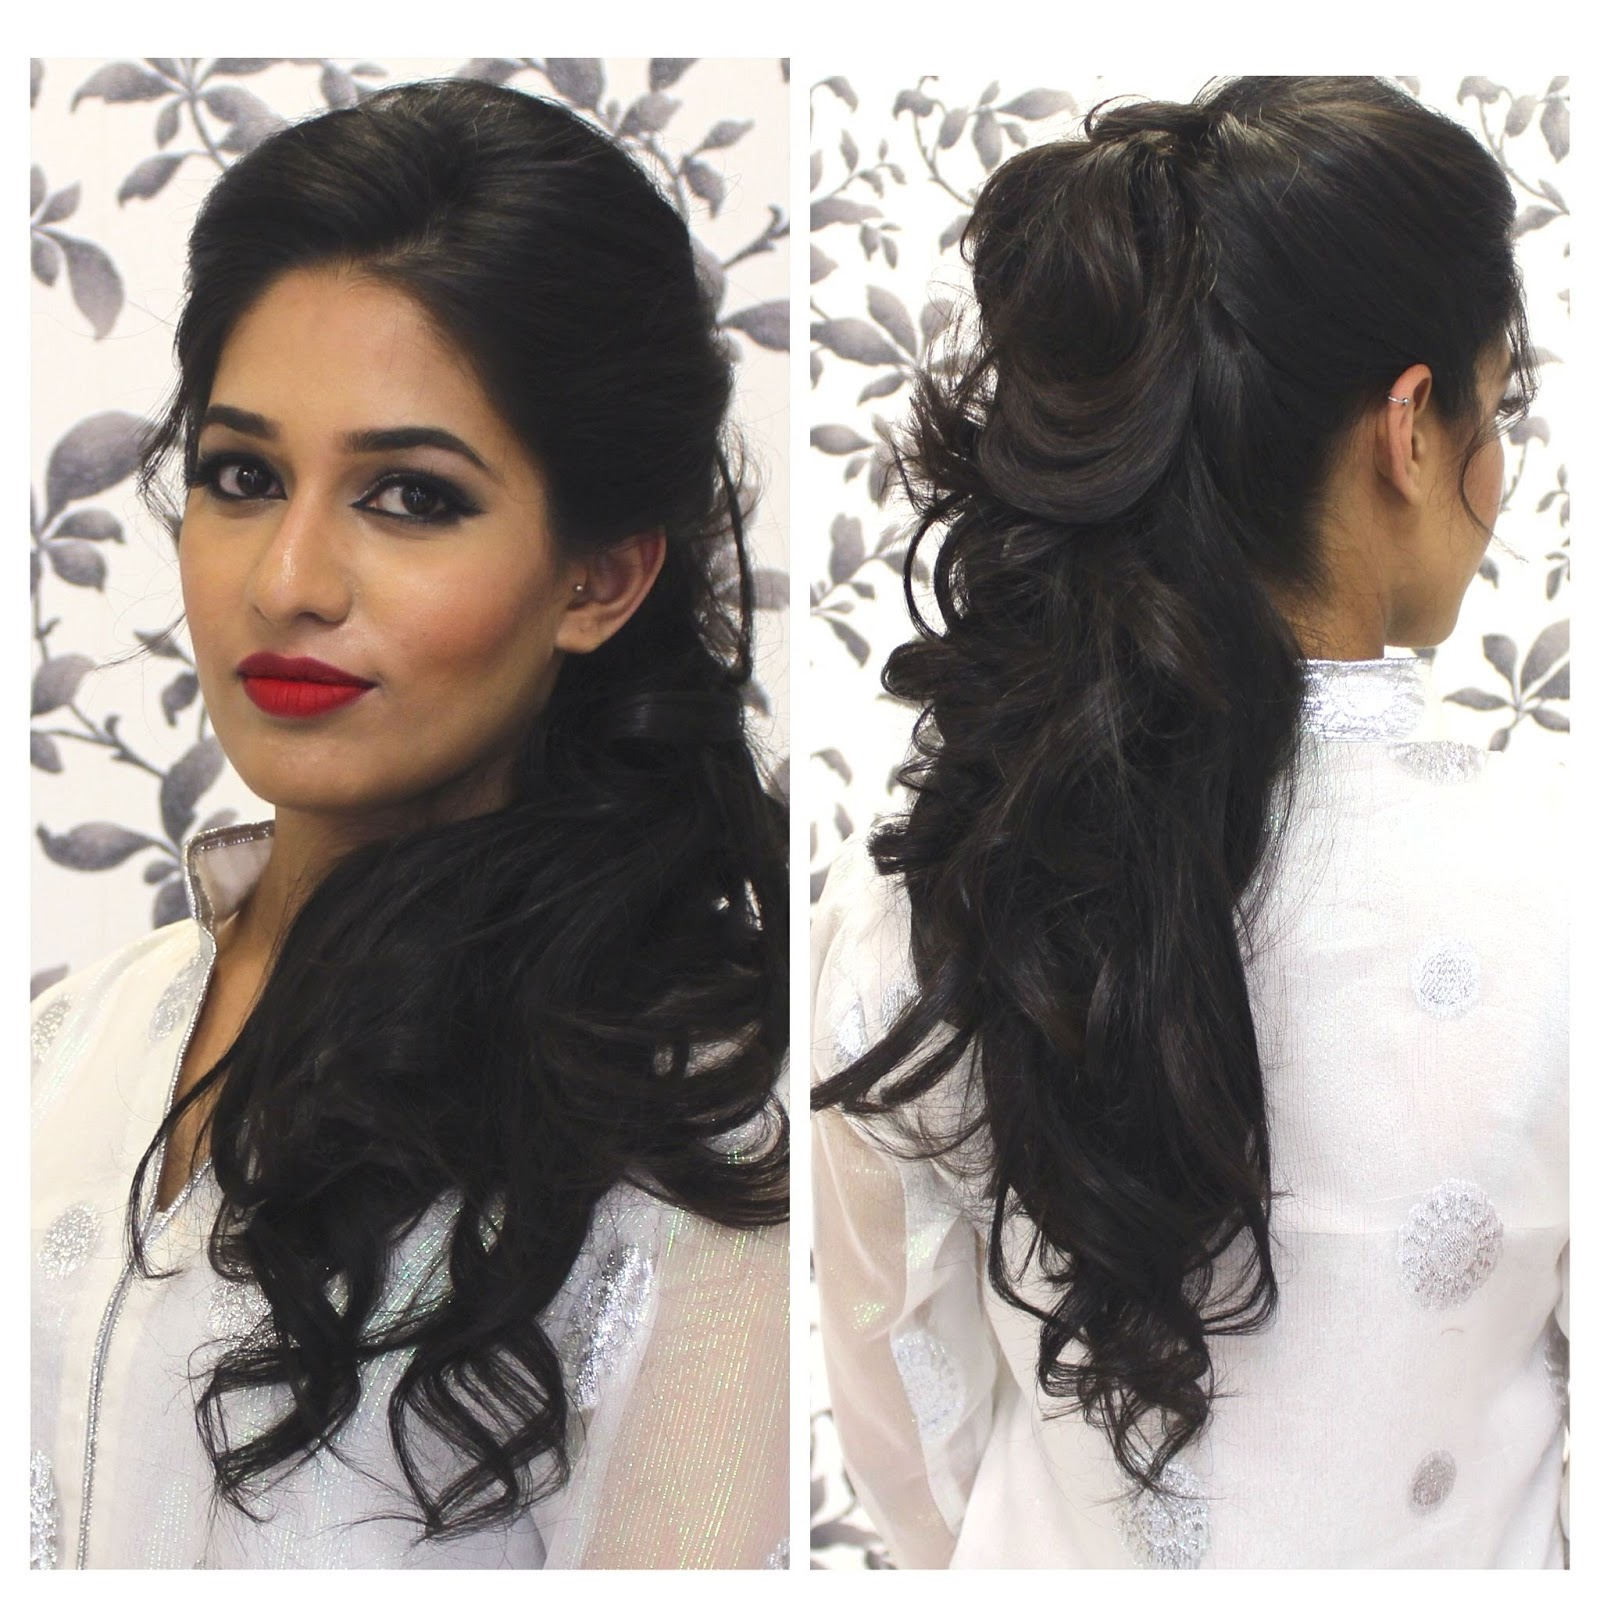 Watch - Layered Indian hairstyles video